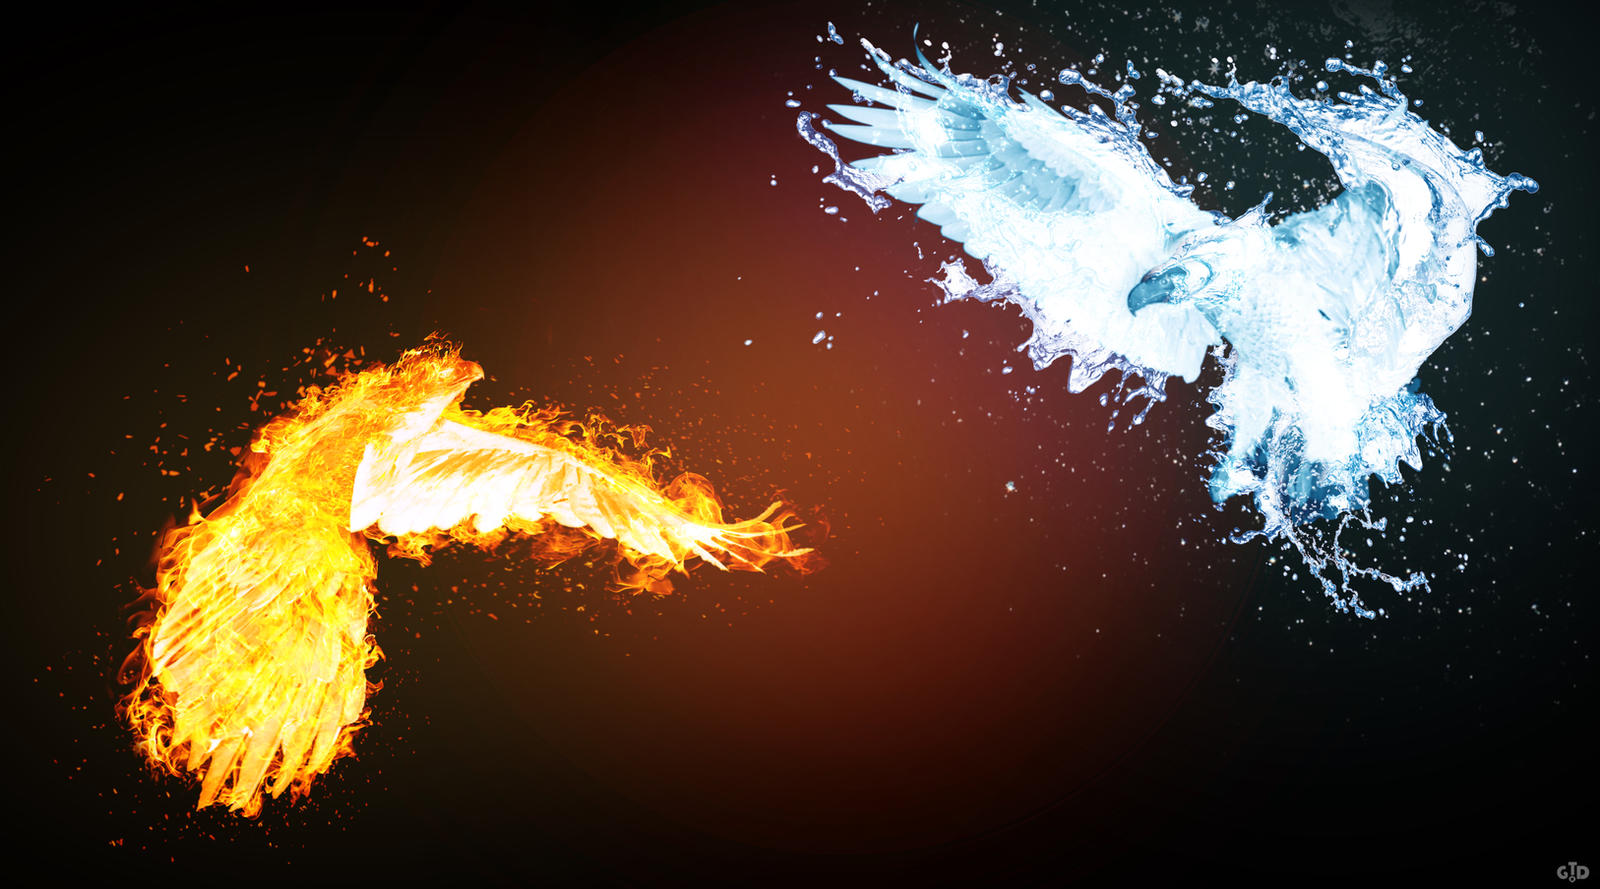 Eagle Fire vs Water by Groltard on DeviantArt